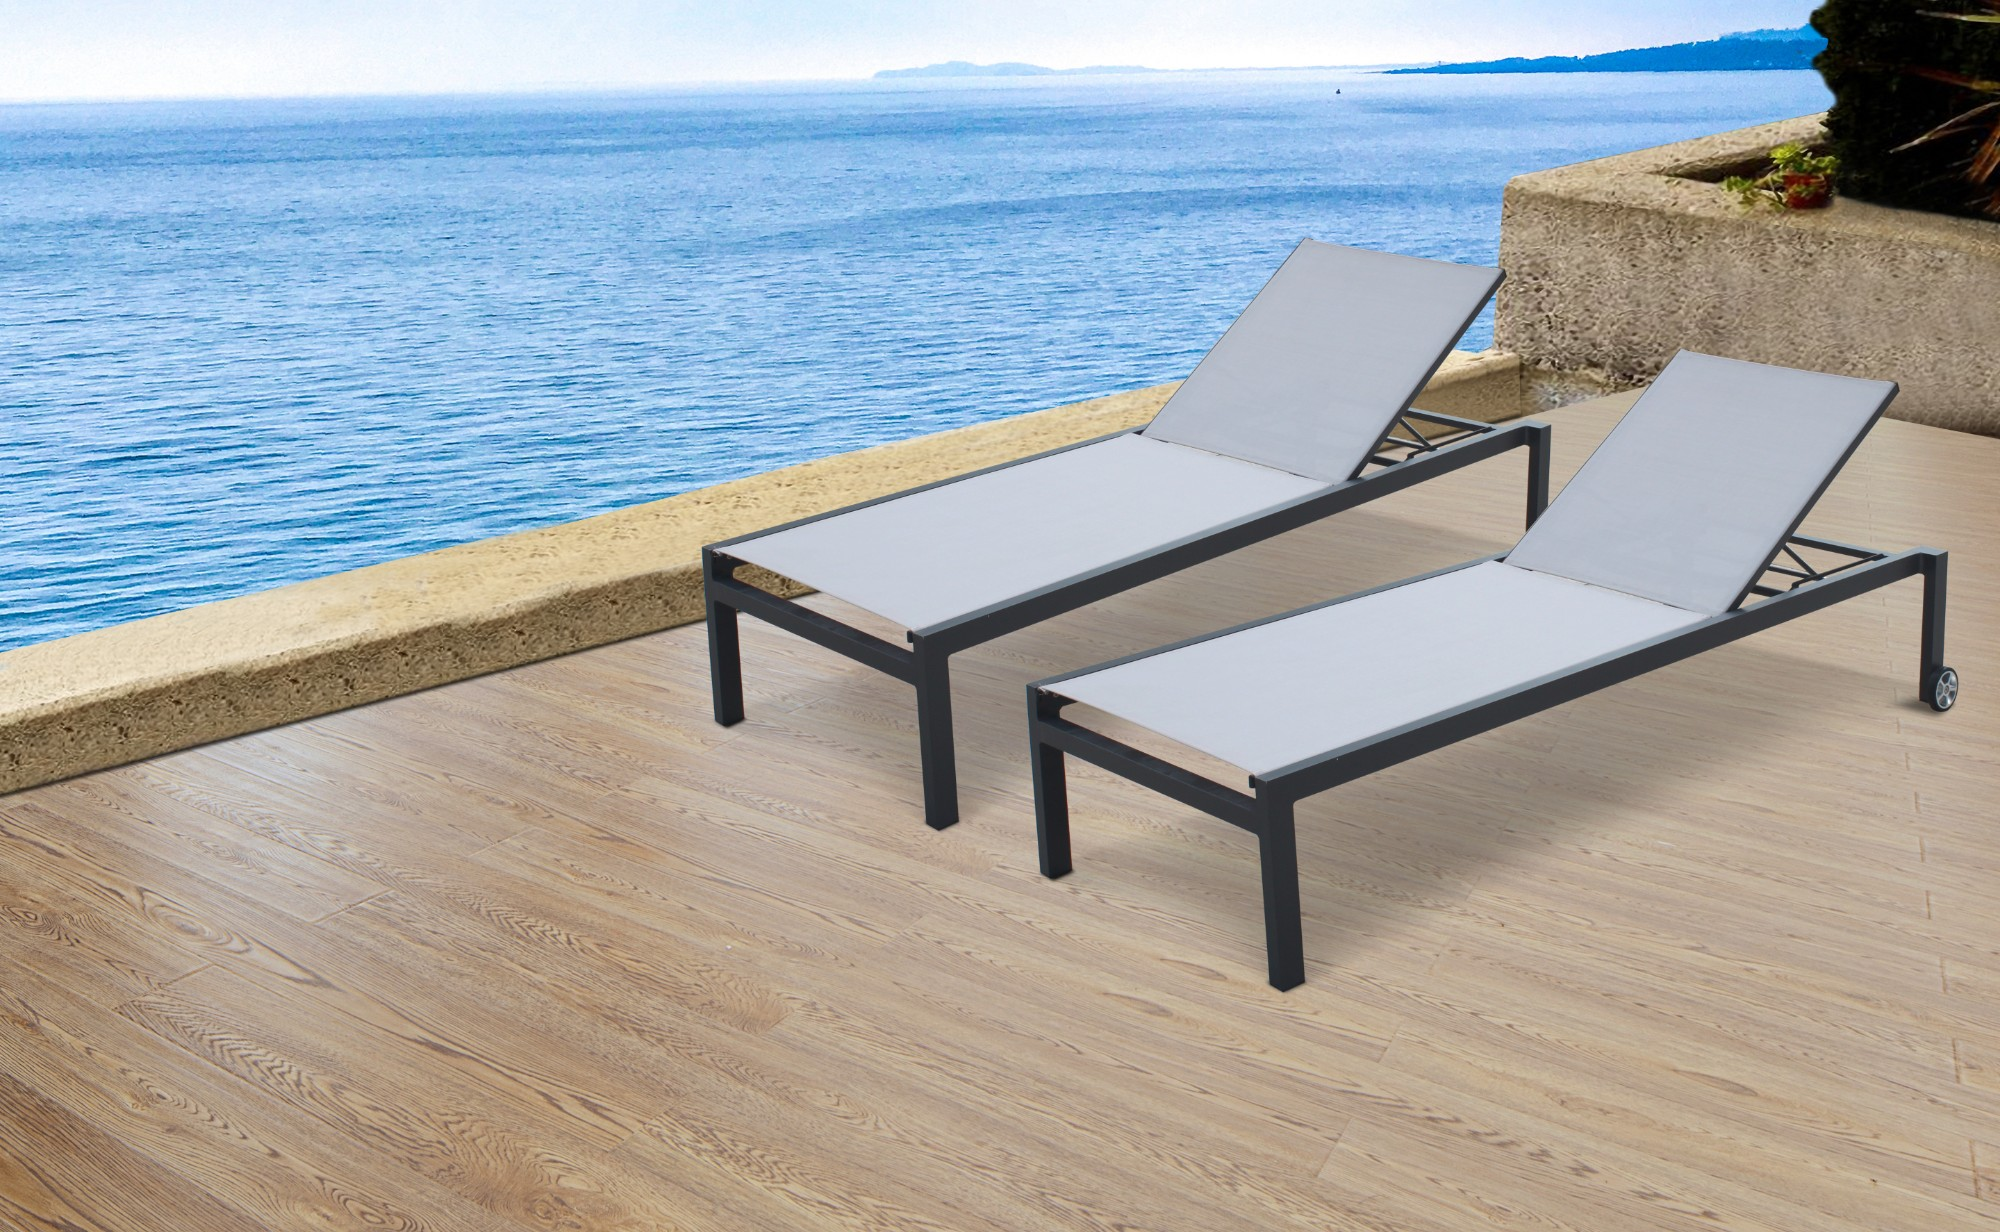 outdoor garden benches daybed sun lounge Manufacturers, outdoor garden benches daybed sun lounge Factory, Supply outdoor garden benches daybed sun lounge